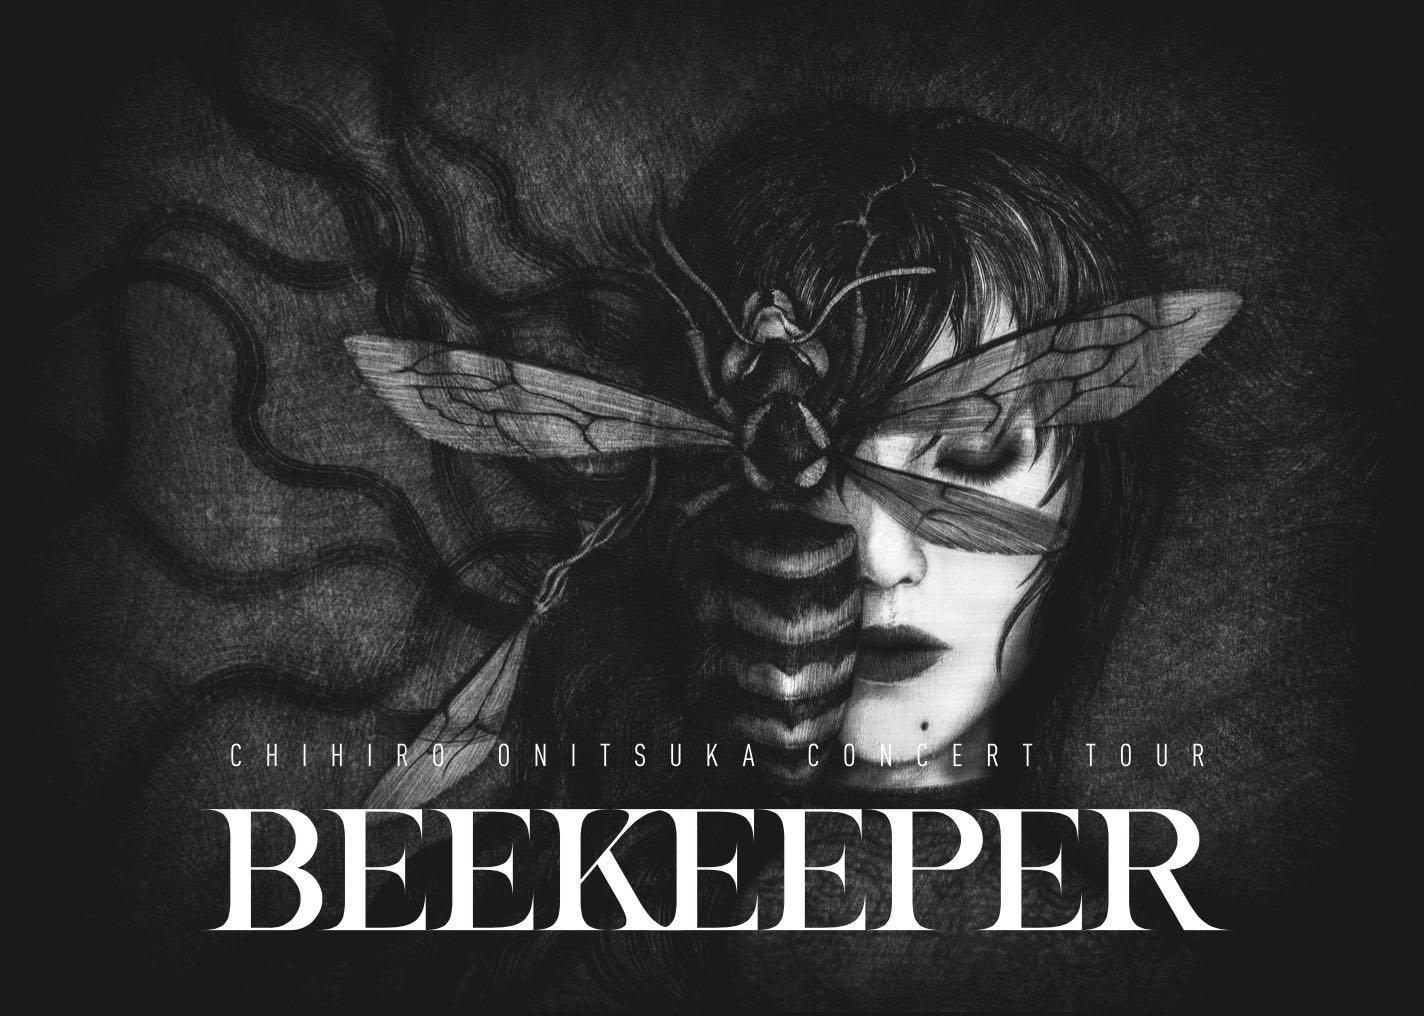 SPECIAL PHOTO BOOK/BEEKEEPER